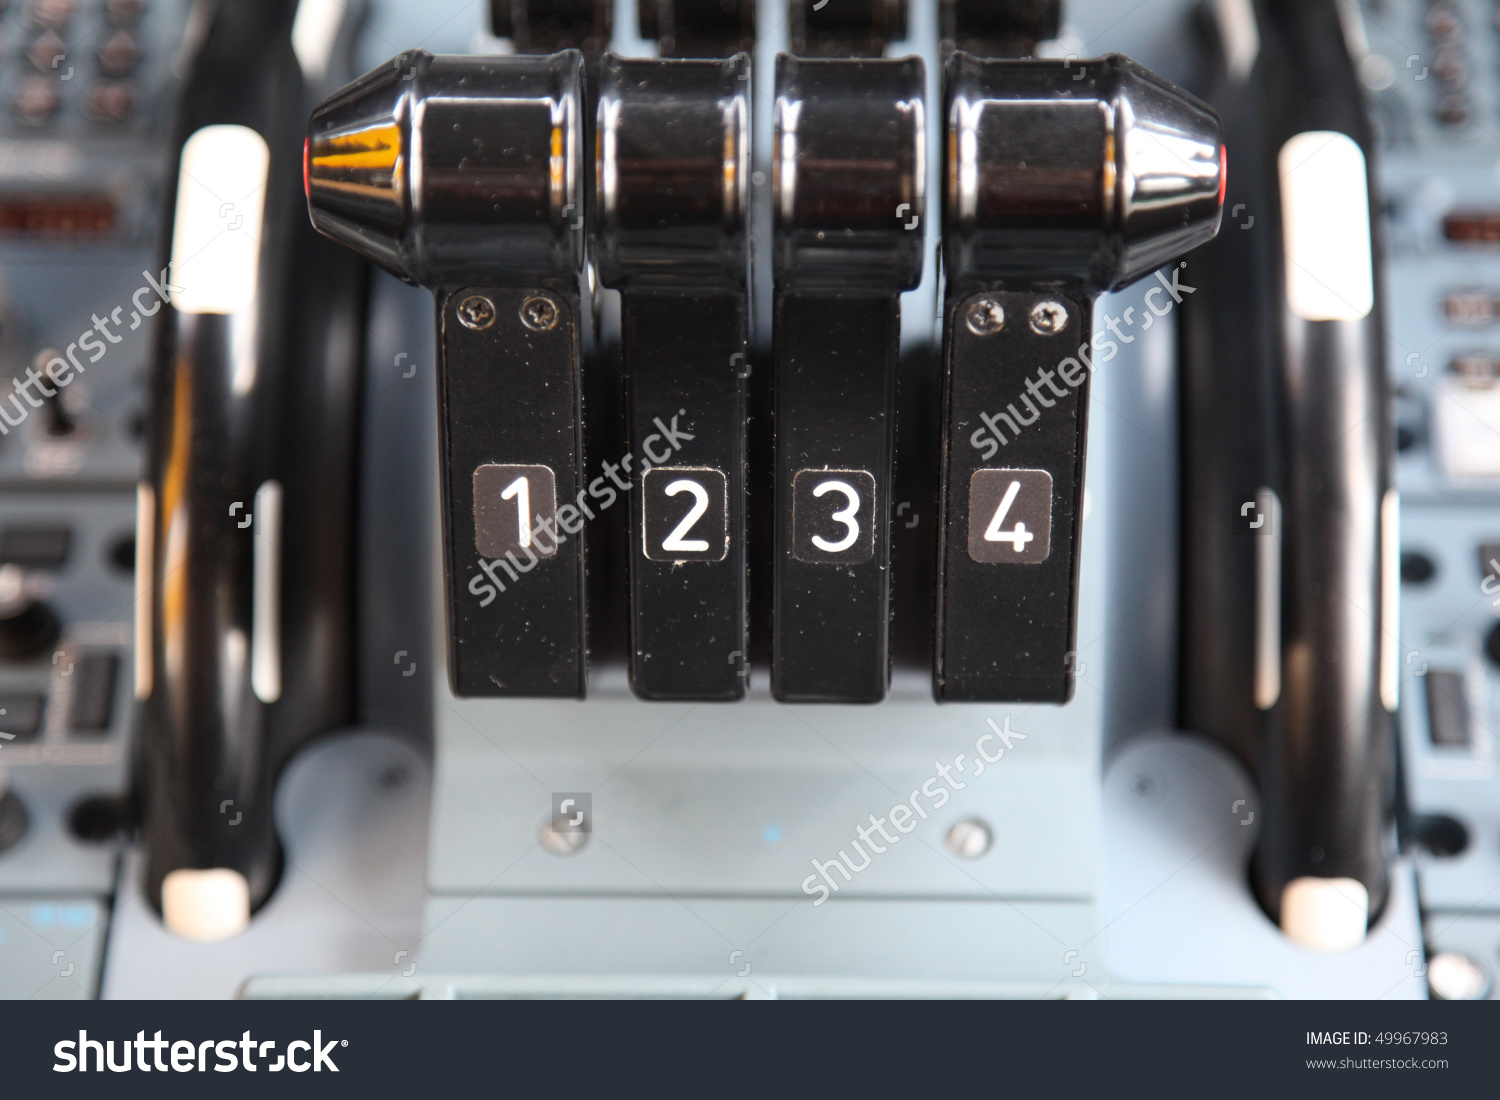 Jet Airplane Four Thrust Levers In The Cockpit Stock Photo.